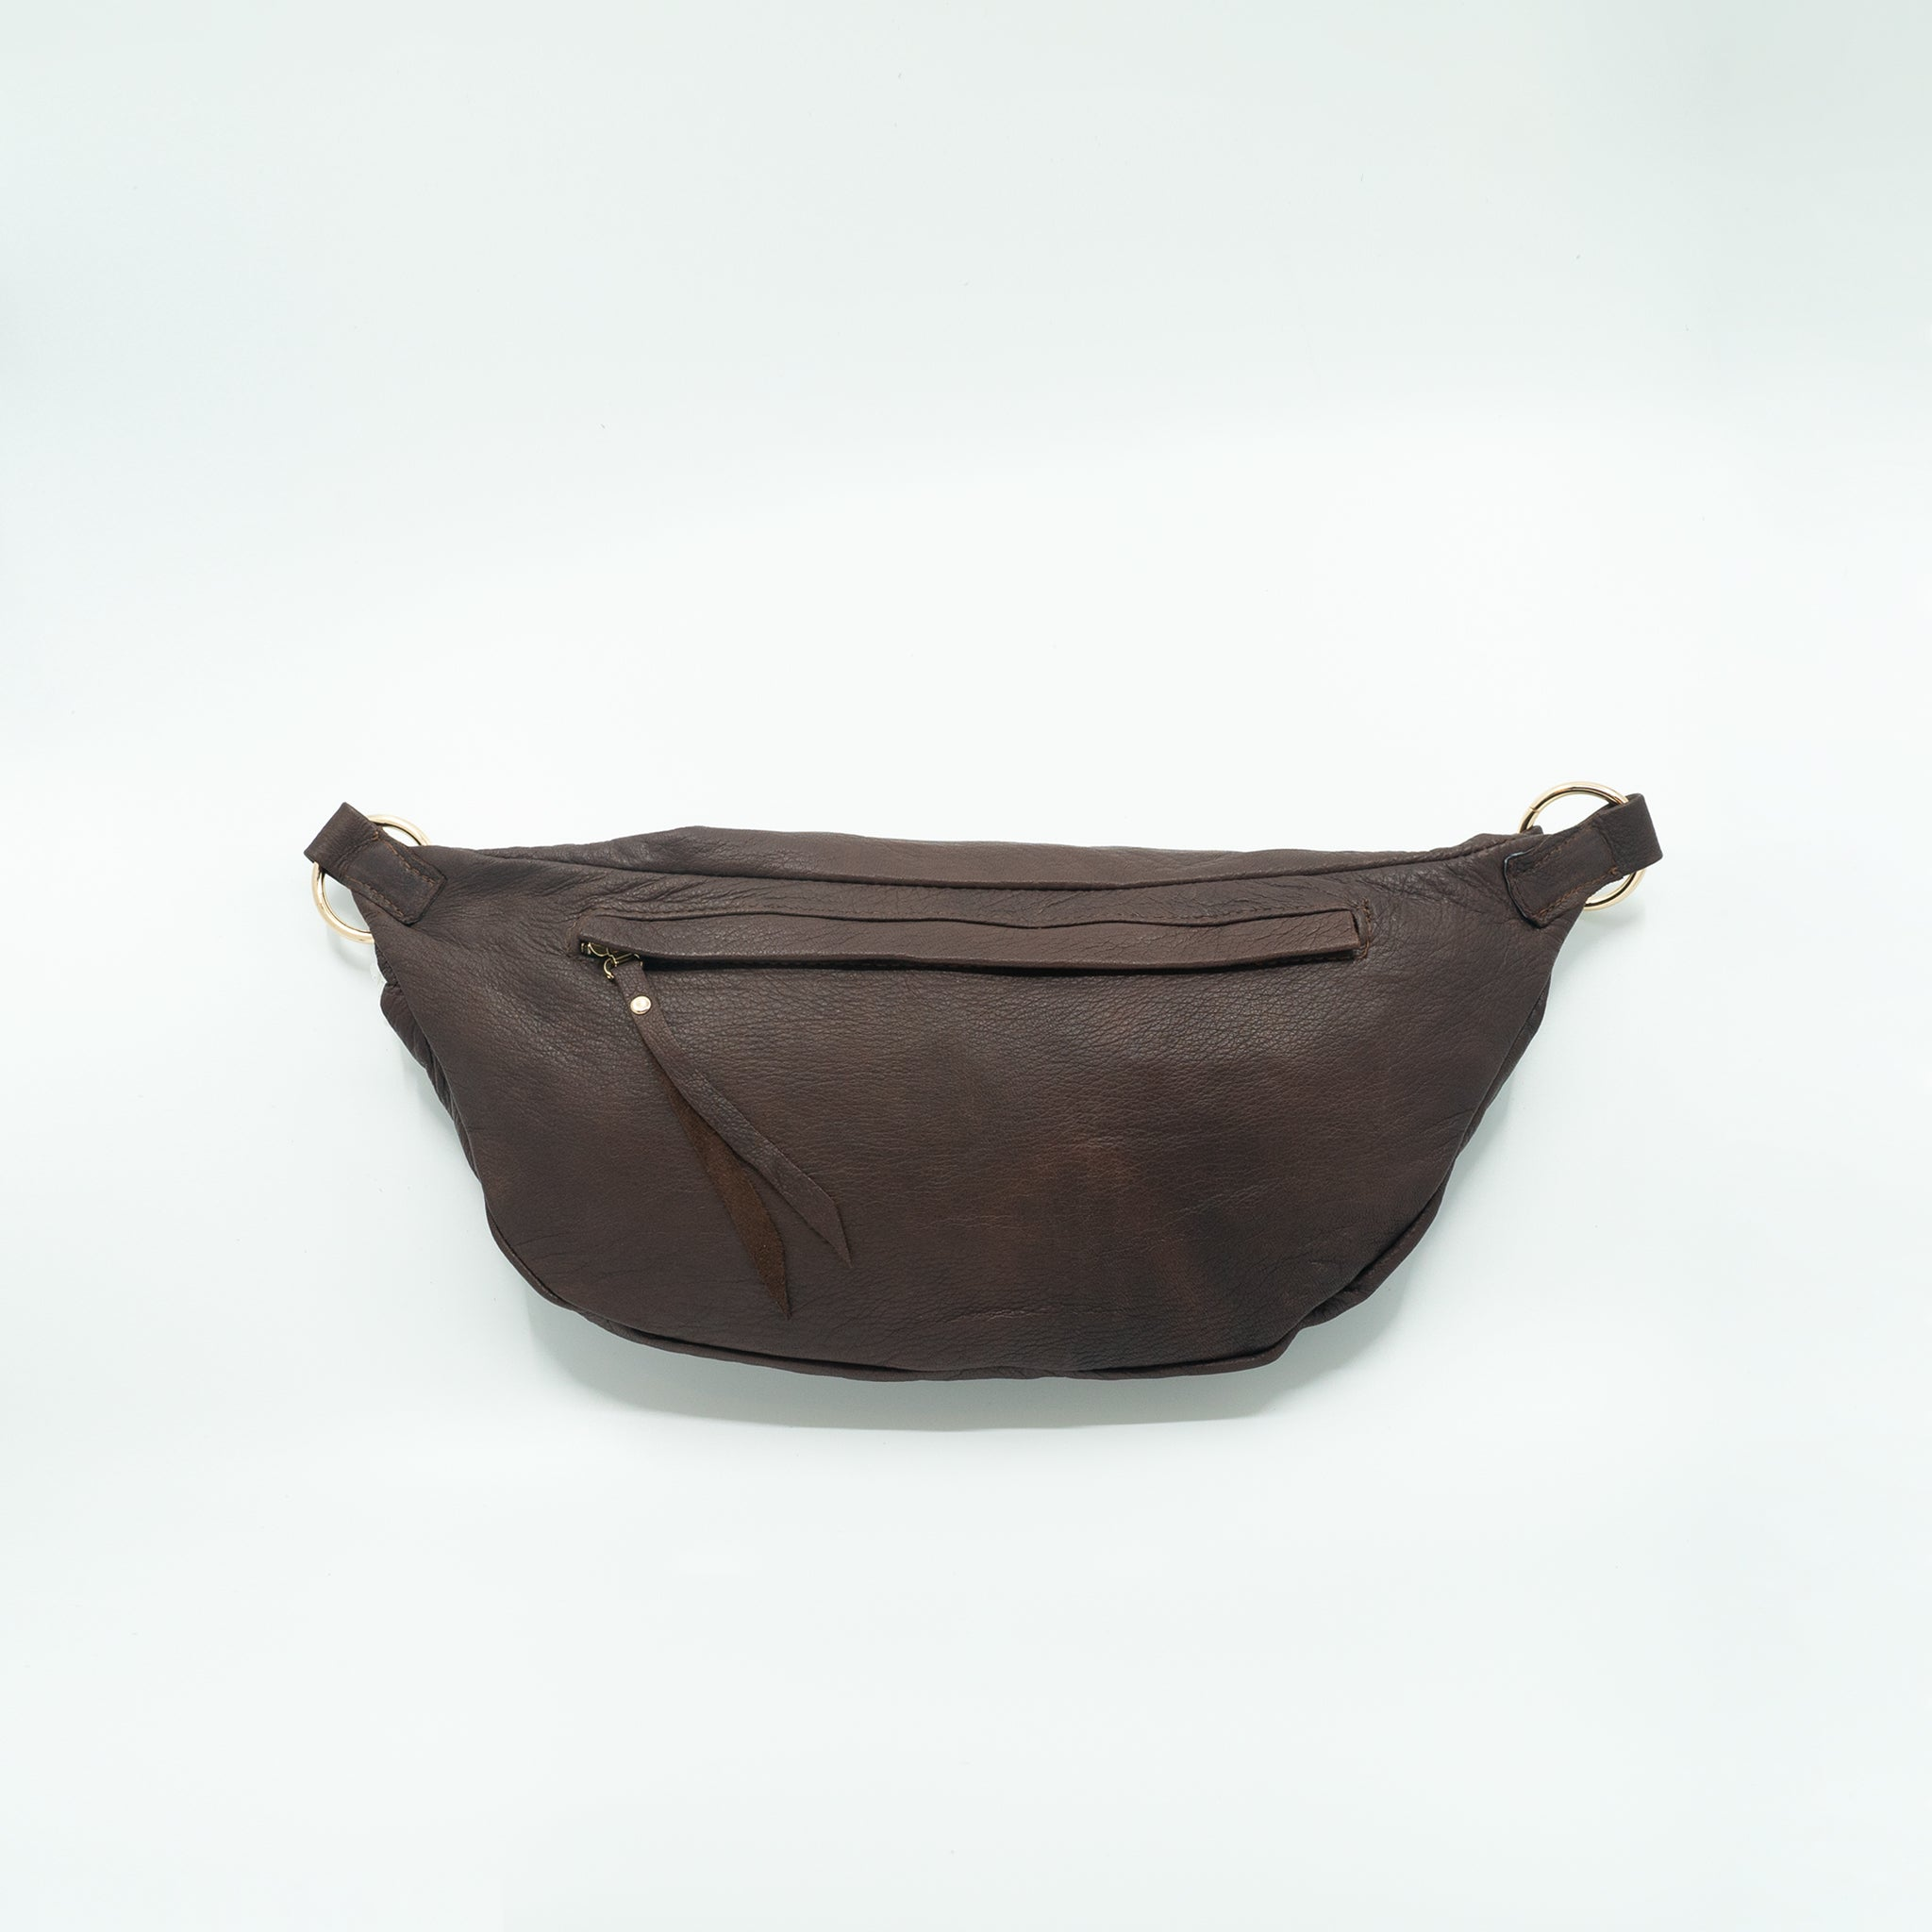 The Everywhere Bag #23 — Distressed Burgundy-Brown Leather with Gold Harware